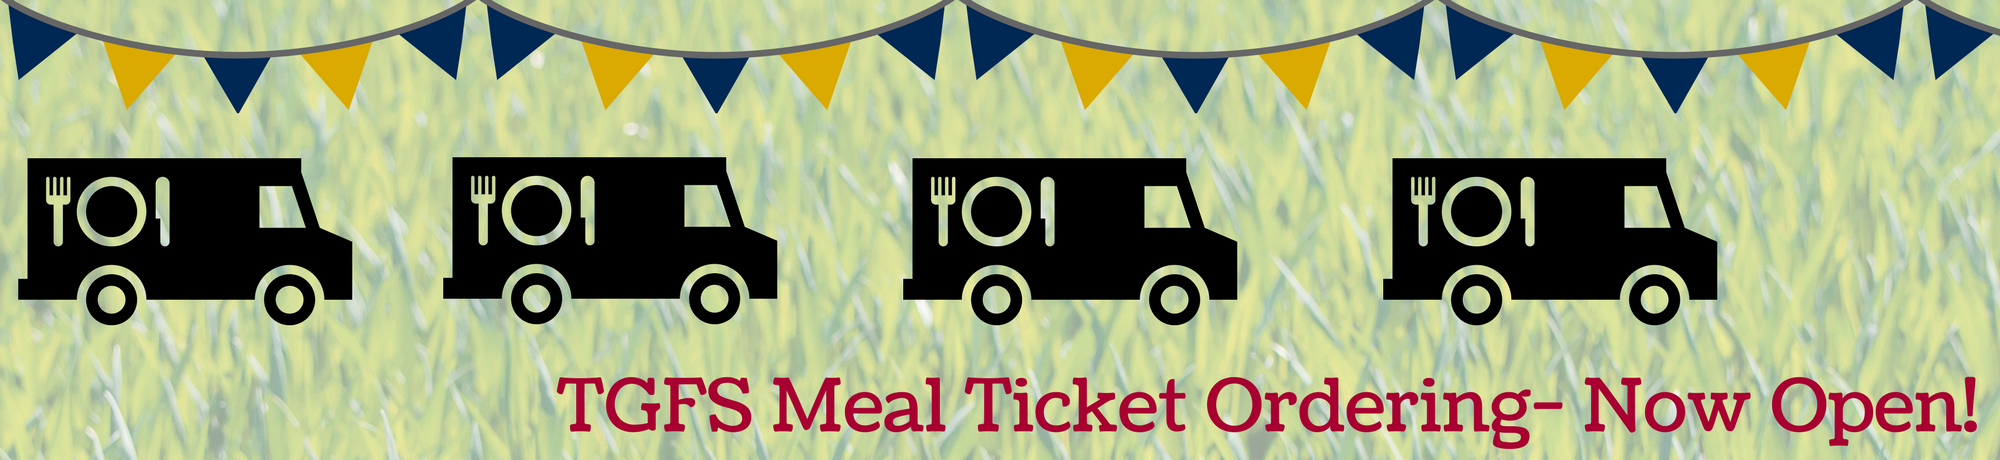 TGFS Meal Ticket Ordering- Now Open!